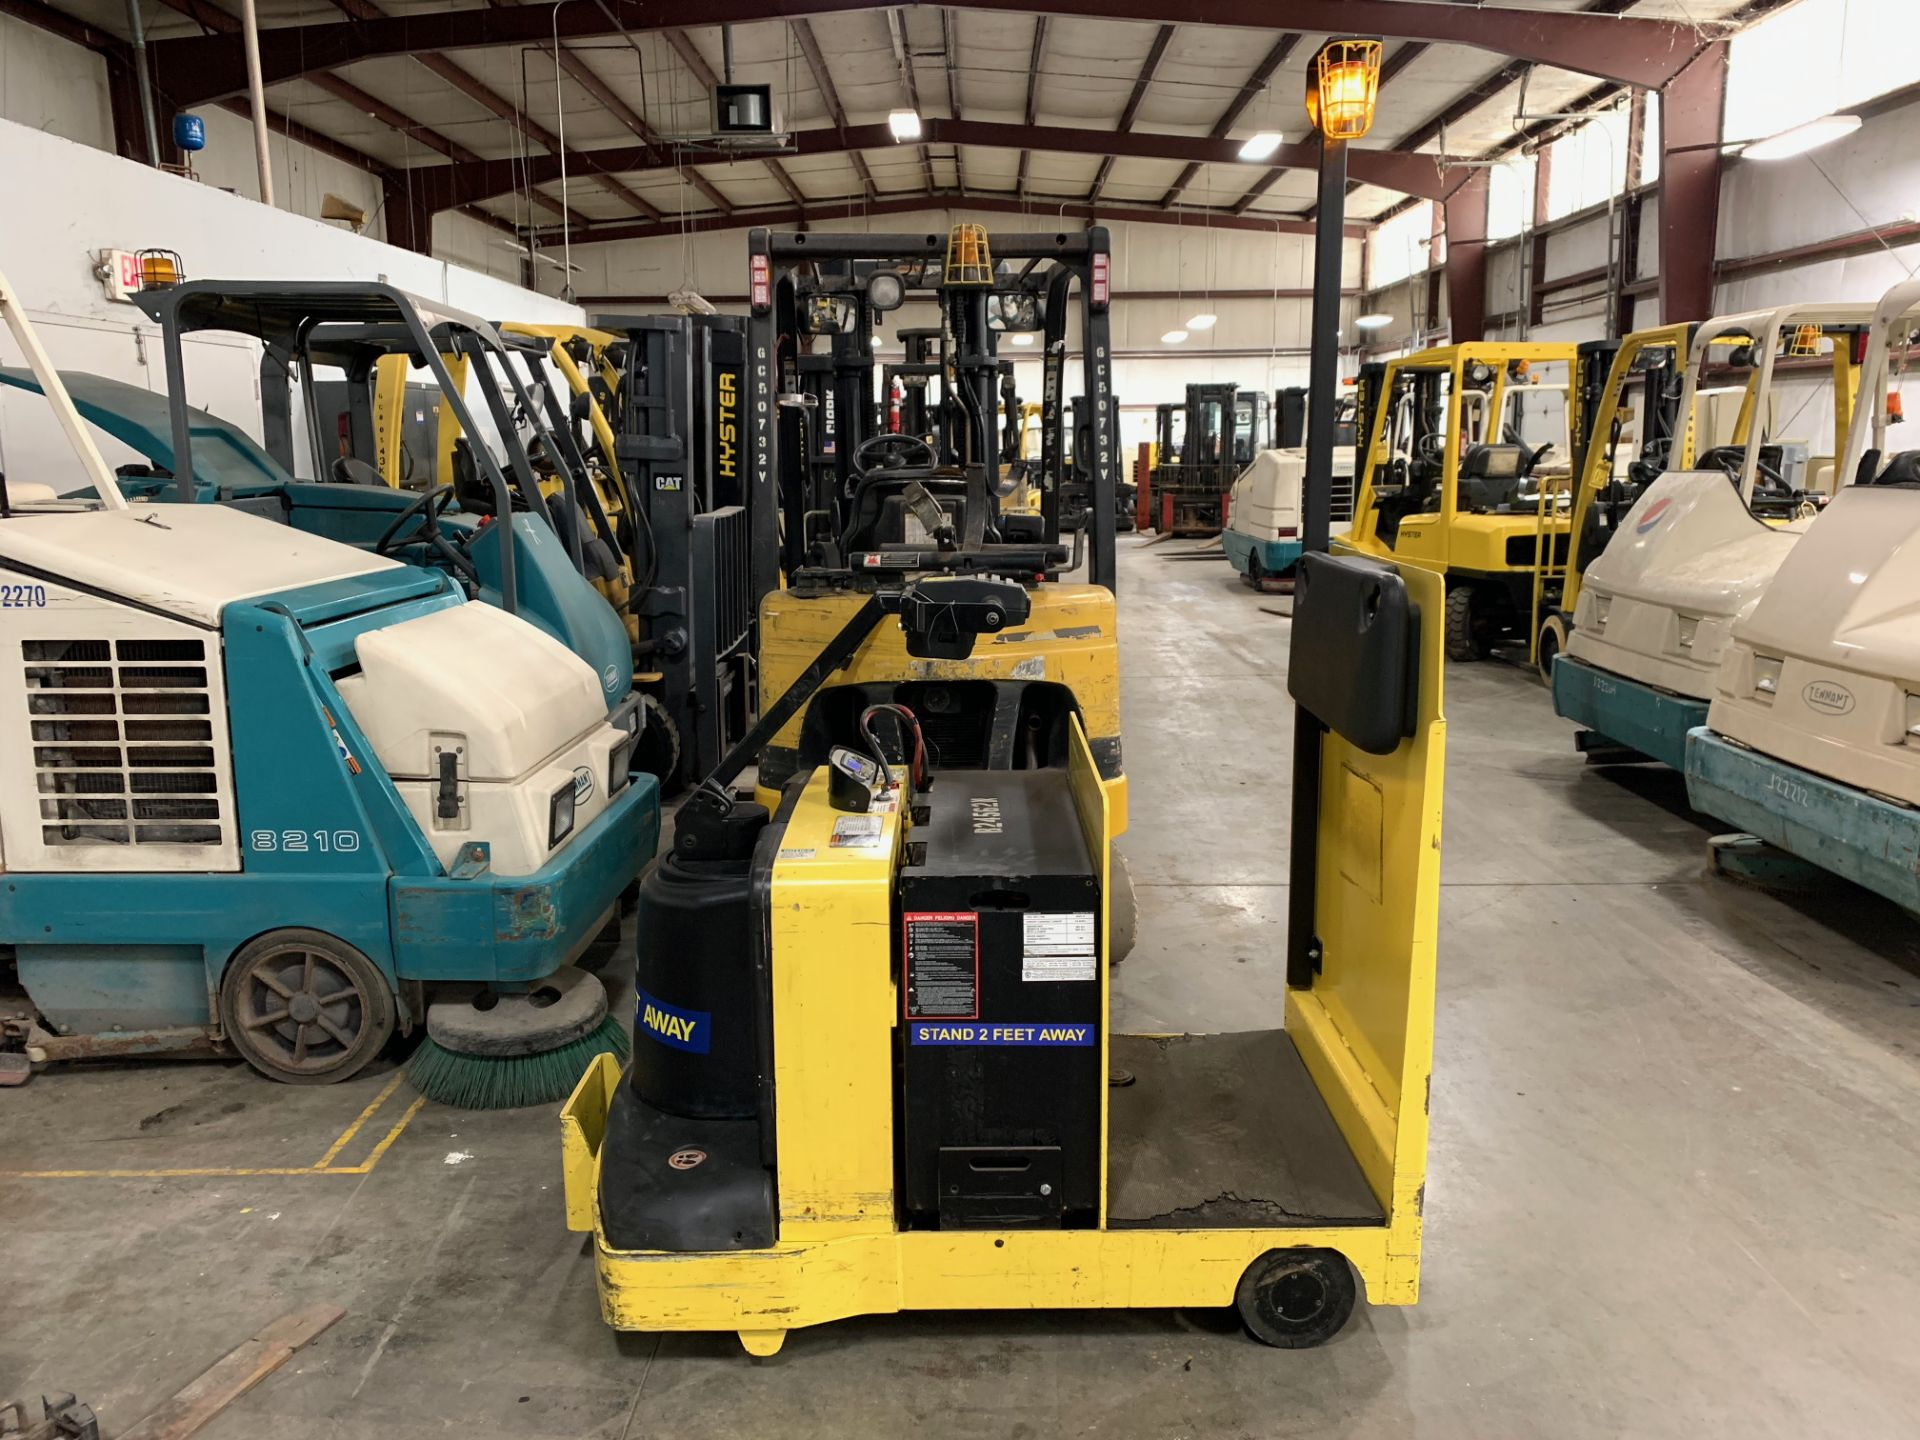 """Lot 21 - 2014 HYSTER ELECTRIC TOW TRACTOR, MOD: T7ZAC, 24 VOLT, WEIGHT: 2,850, COUPLER HEIGHT: 12"""", 8,616 HRS"""